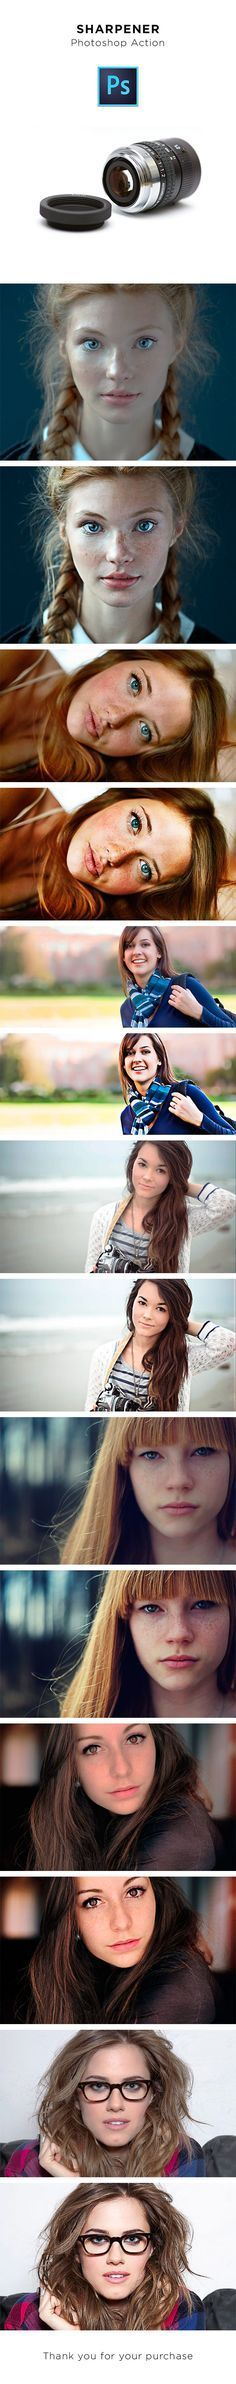 Sharpener Photoshop Action